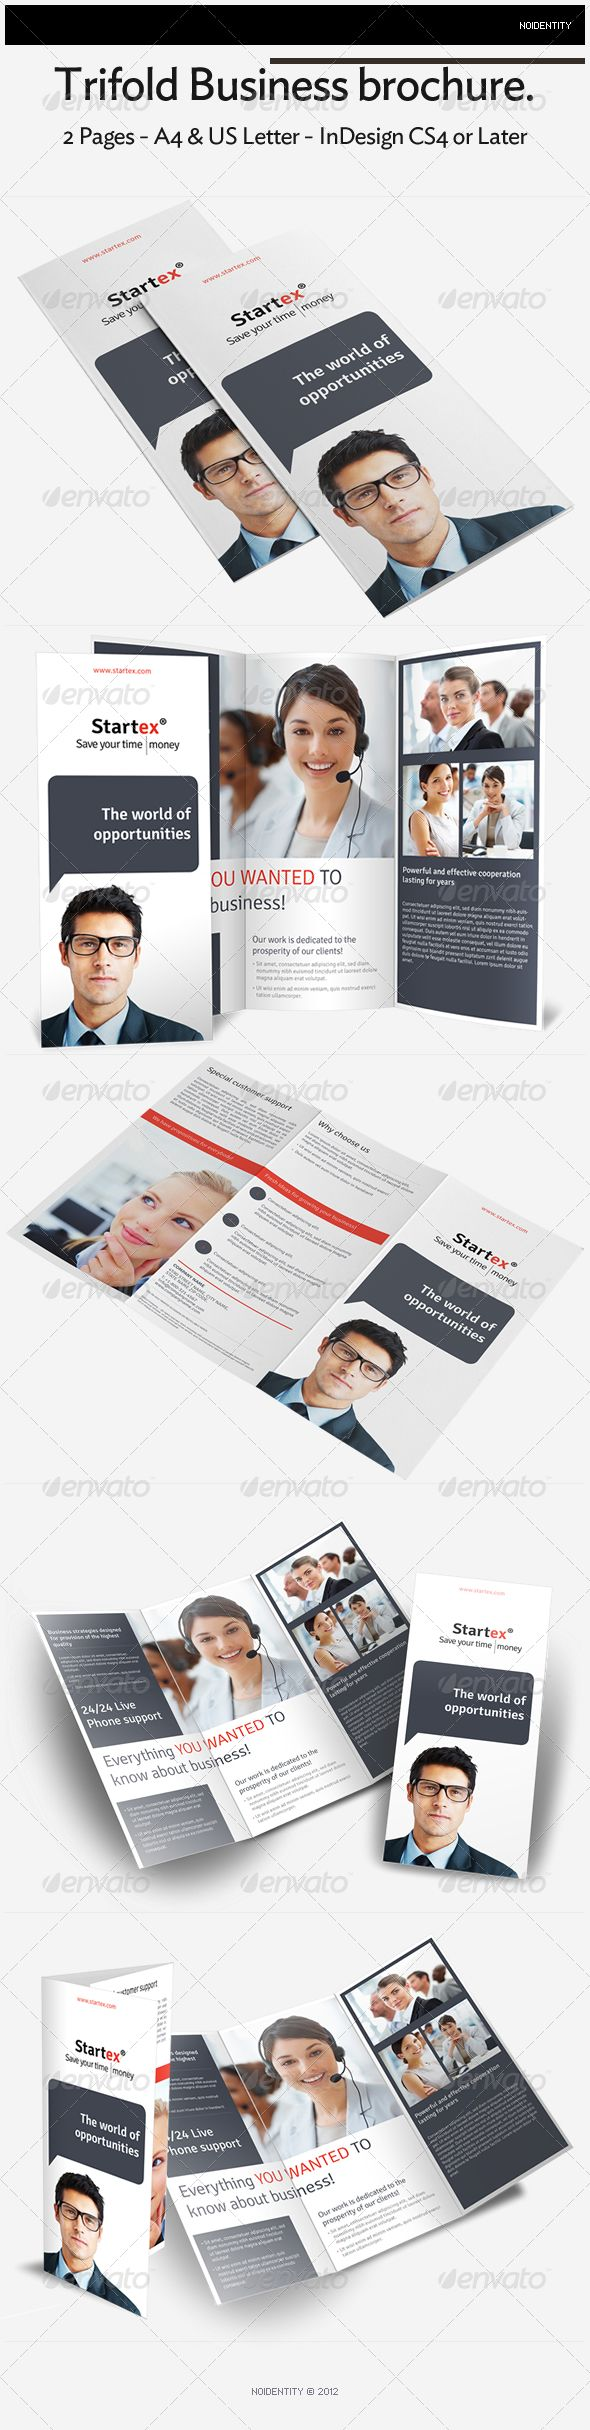 tri fold brochure template indesign cs6 - 17 best images about print templates on pinterest fonts